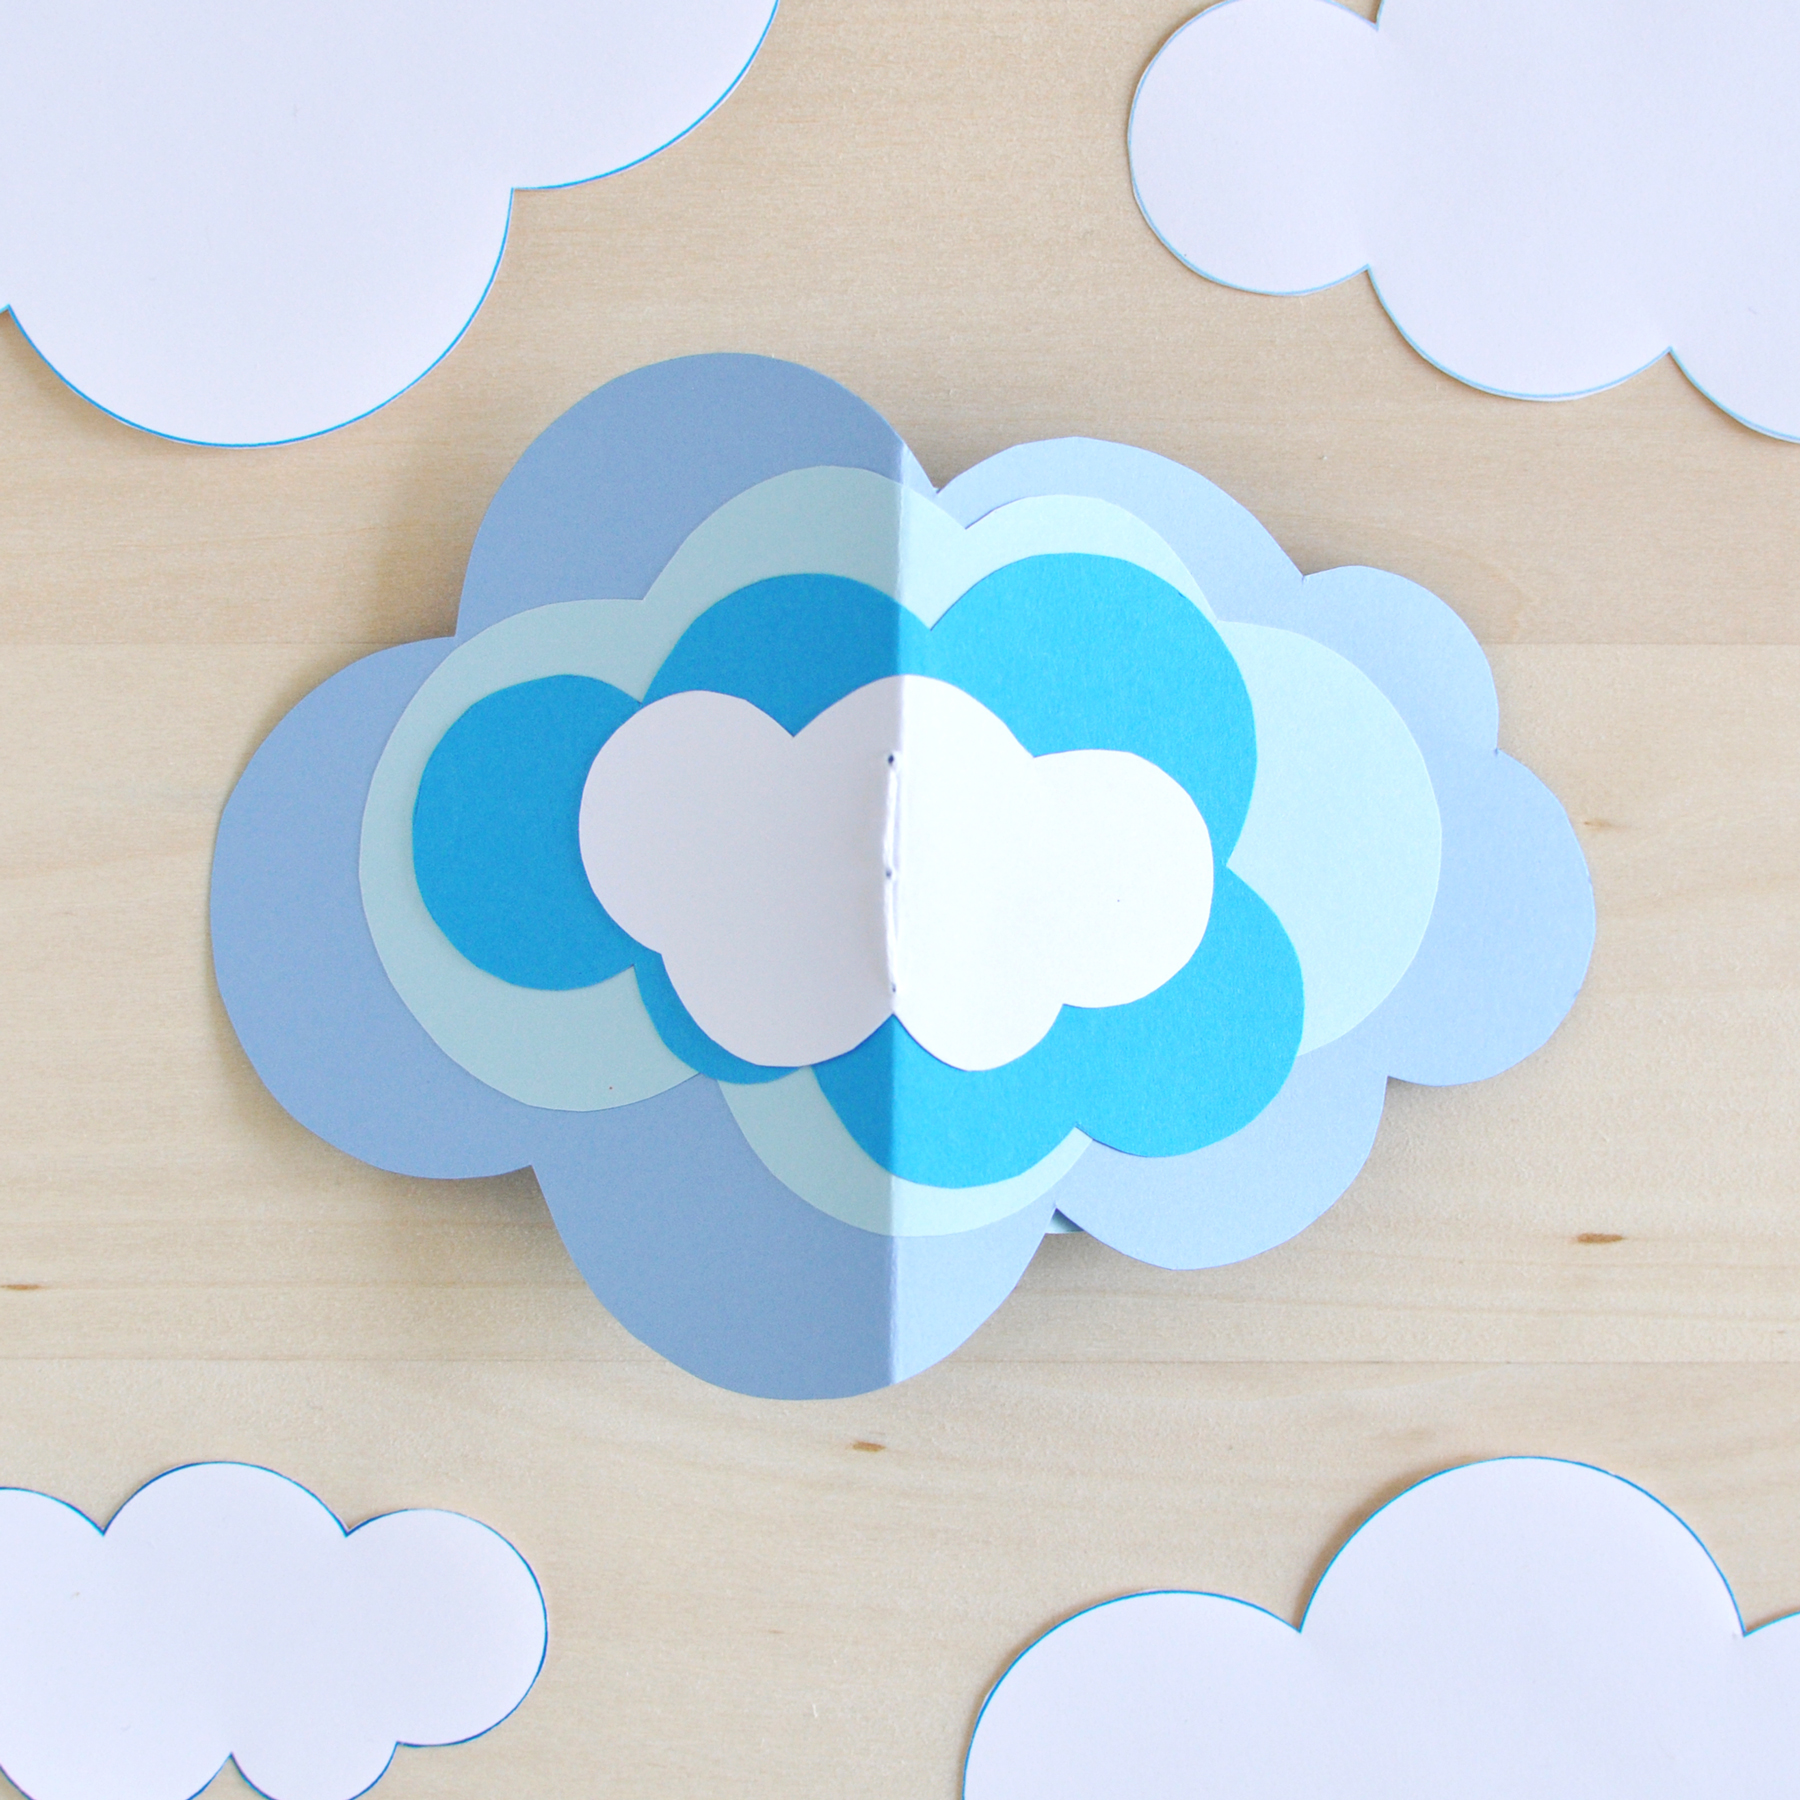 Make-Your-Own-Mini-Cloud-Journal---Image12.jpg